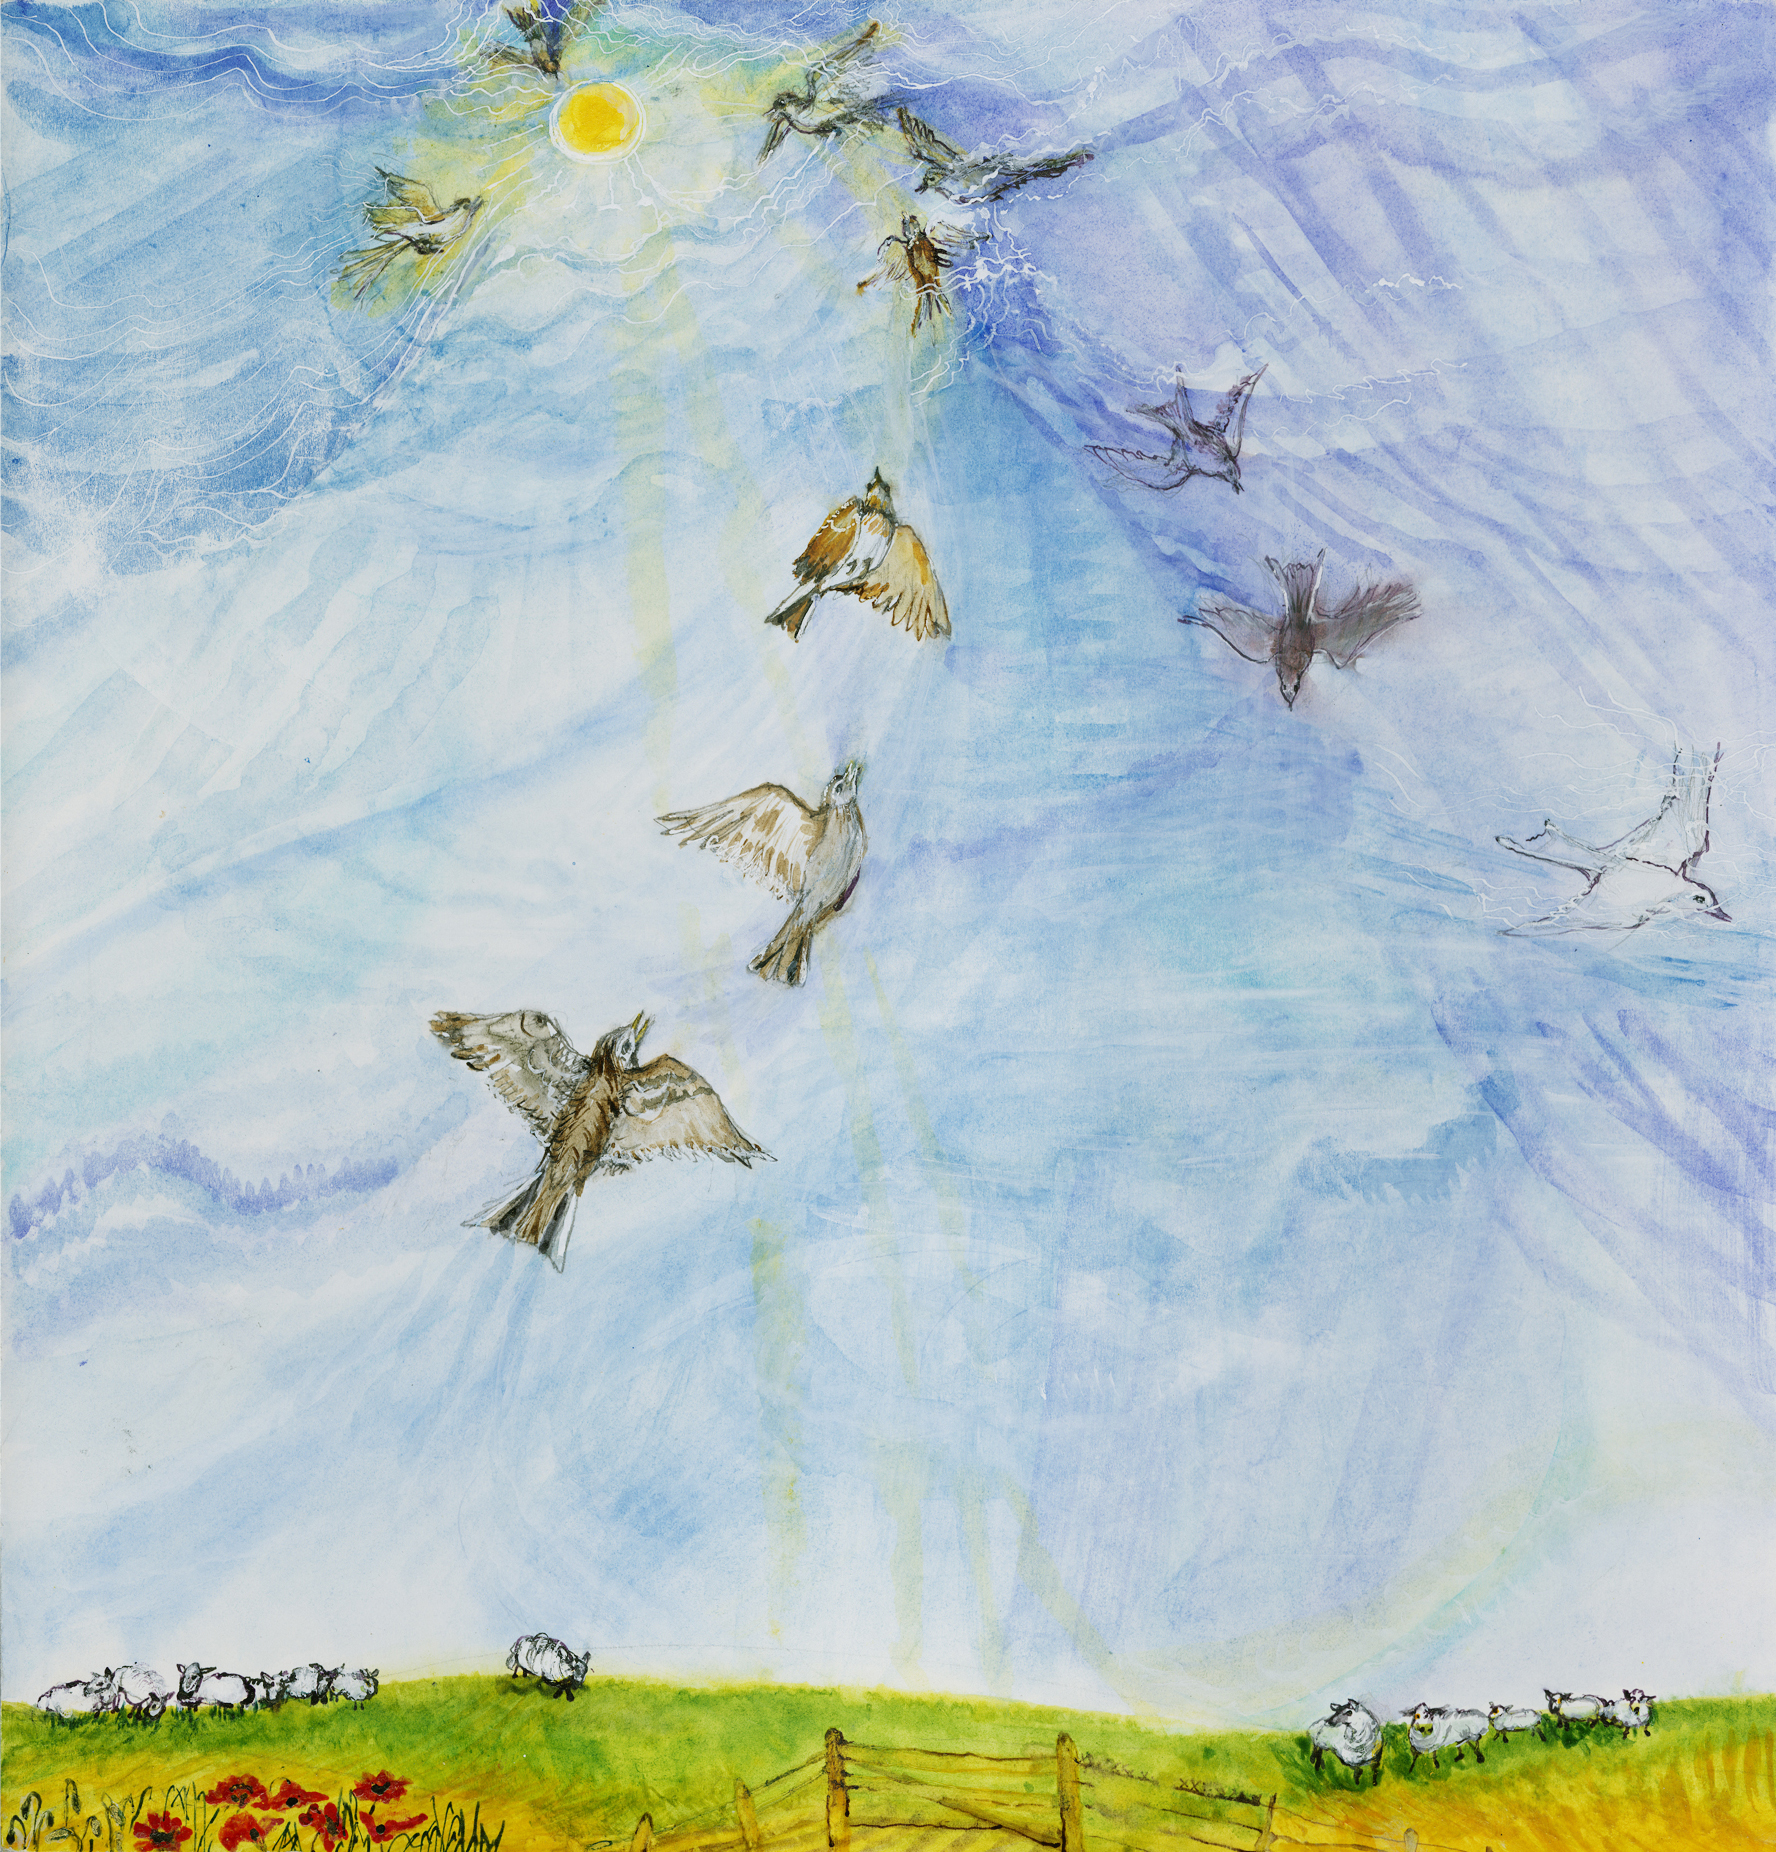 Larks soaring to the sun